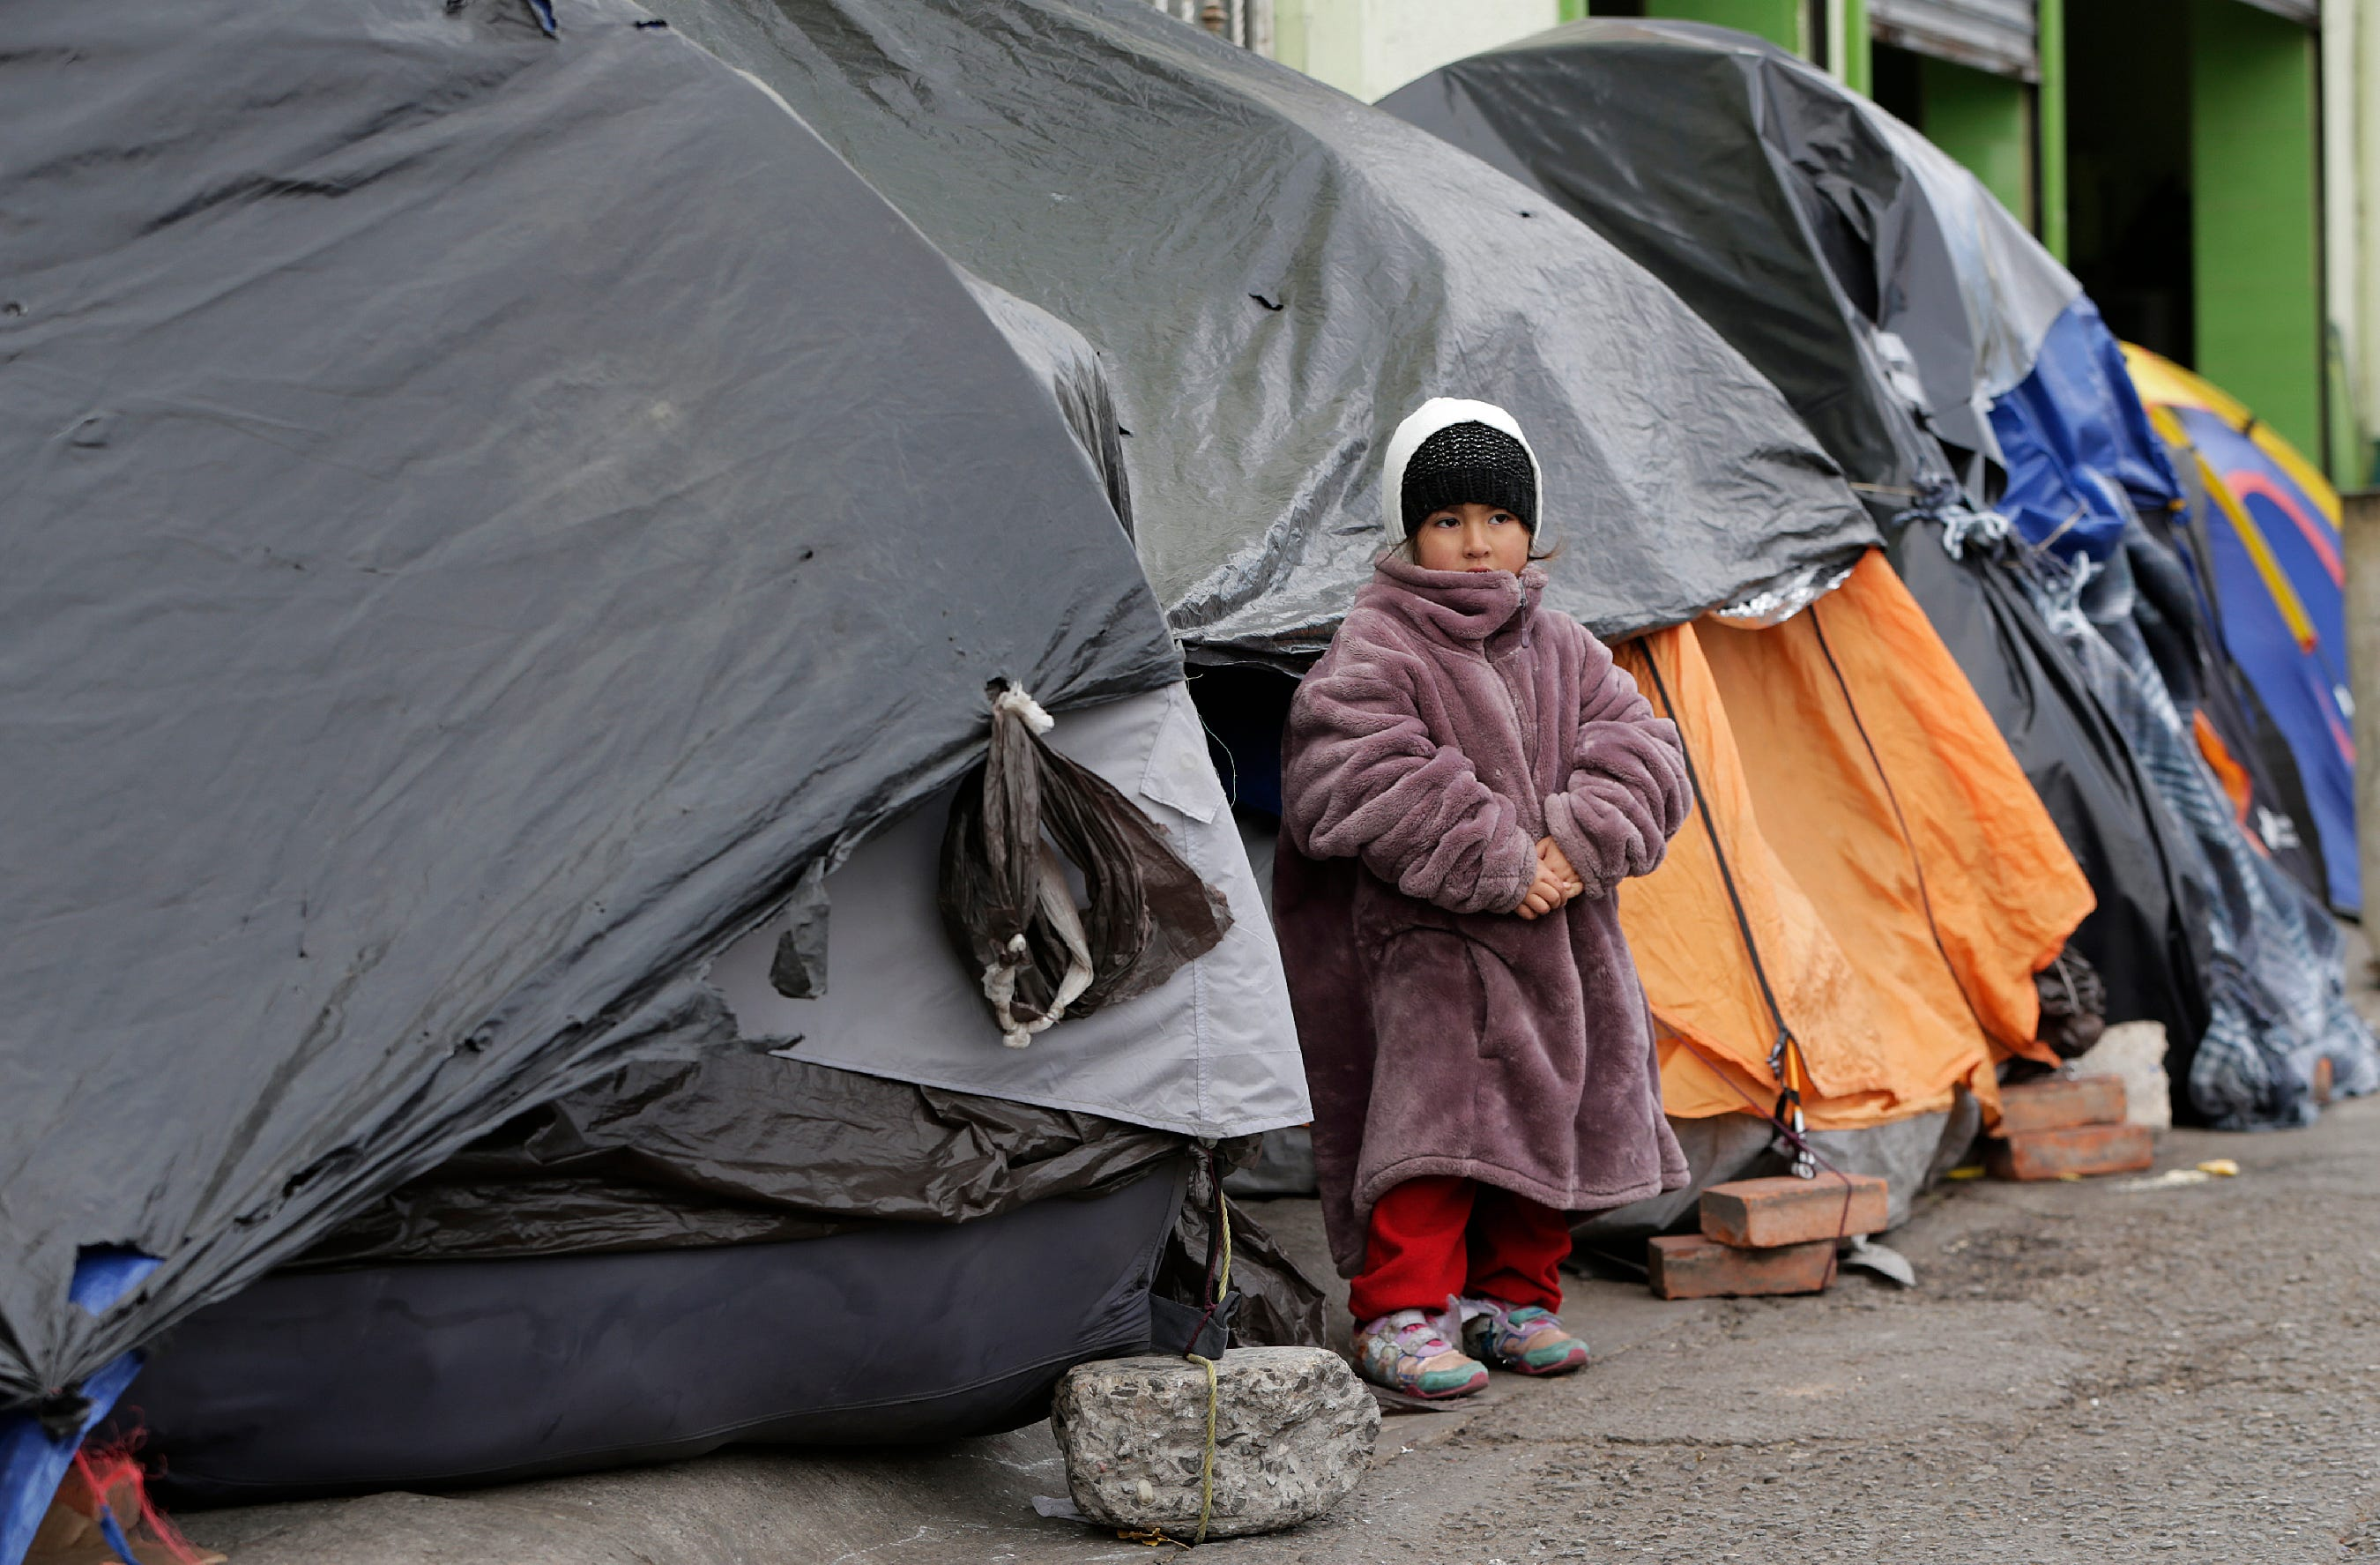 'It feels like no one is listening': Mexican asylum seekers battle cold as they wait turn